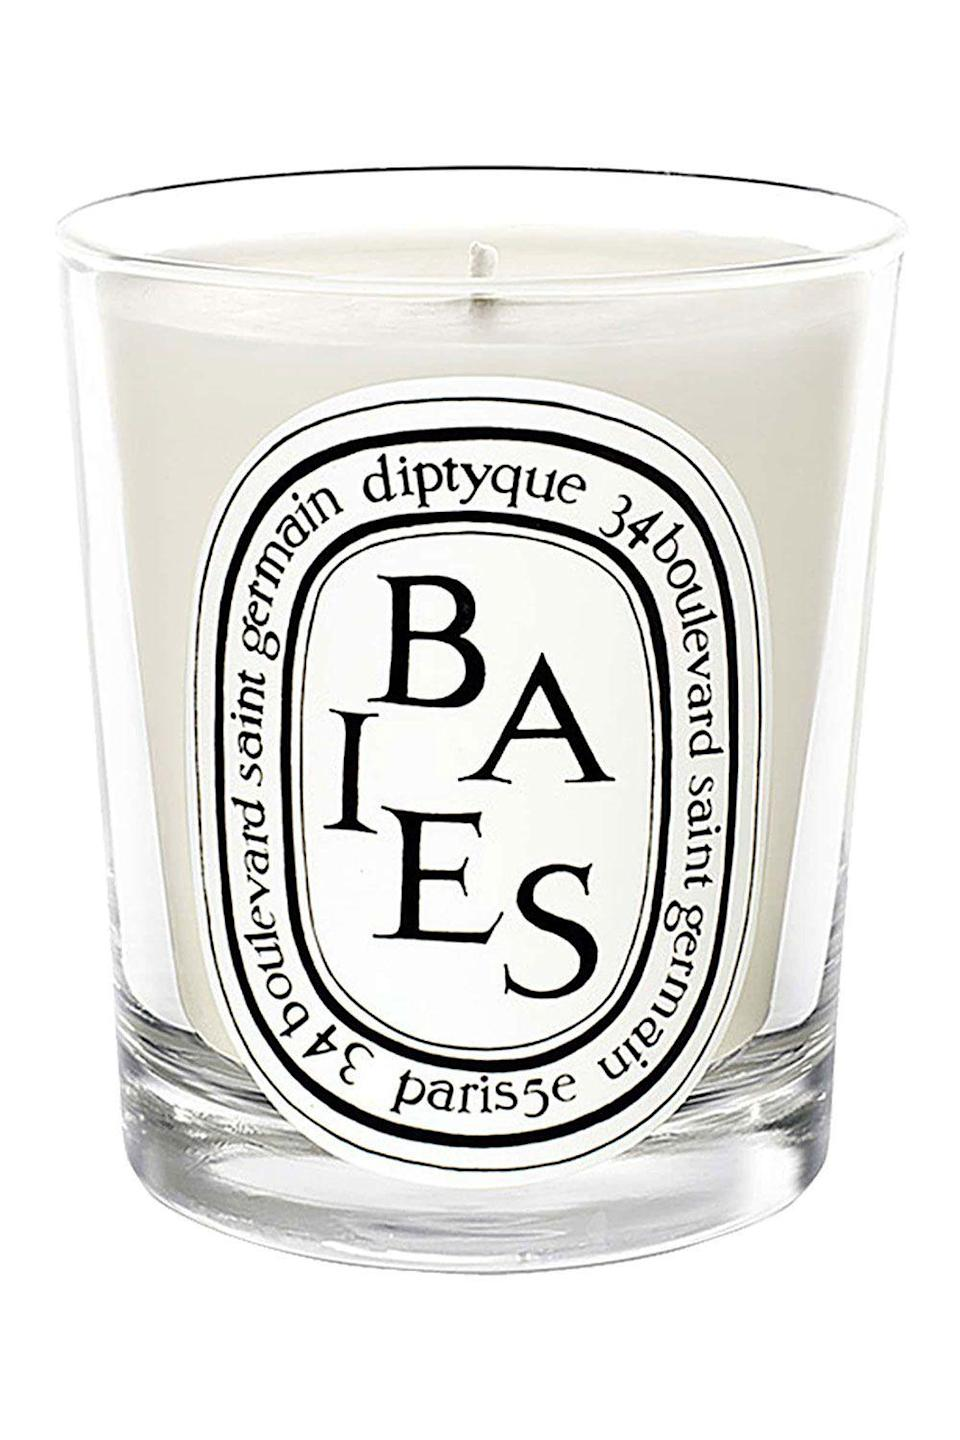 """<p><strong>Diptyque</strong></p><p>nordstrom.com</p><p><strong>$68.00</strong></p><p><a href=""""https://go.redirectingat.com?id=74968X1596630&url=https%3A%2F%2Fwww.nordstrom.com%2Fs%2Fdiptyque-baies-berries-candle%2F3227984&sref=https%3A%2F%2Fwww.oprahdaily.com%2Flife%2Fg23584712%2Fbest-scented-candles%2F"""" rel=""""nofollow noopener"""" target=""""_blank"""" data-ylk=""""slk:SHOP NOW"""" class=""""link rapid-noclick-resp"""">SHOP NOW</a></p><p>What's a scented candle wish list without this fancy Parisian brand? Reminiscent of a bouquet of roses, currant leaves and berries, there's a reason why Baies/Berries reigns as the most popular scent.</p>"""